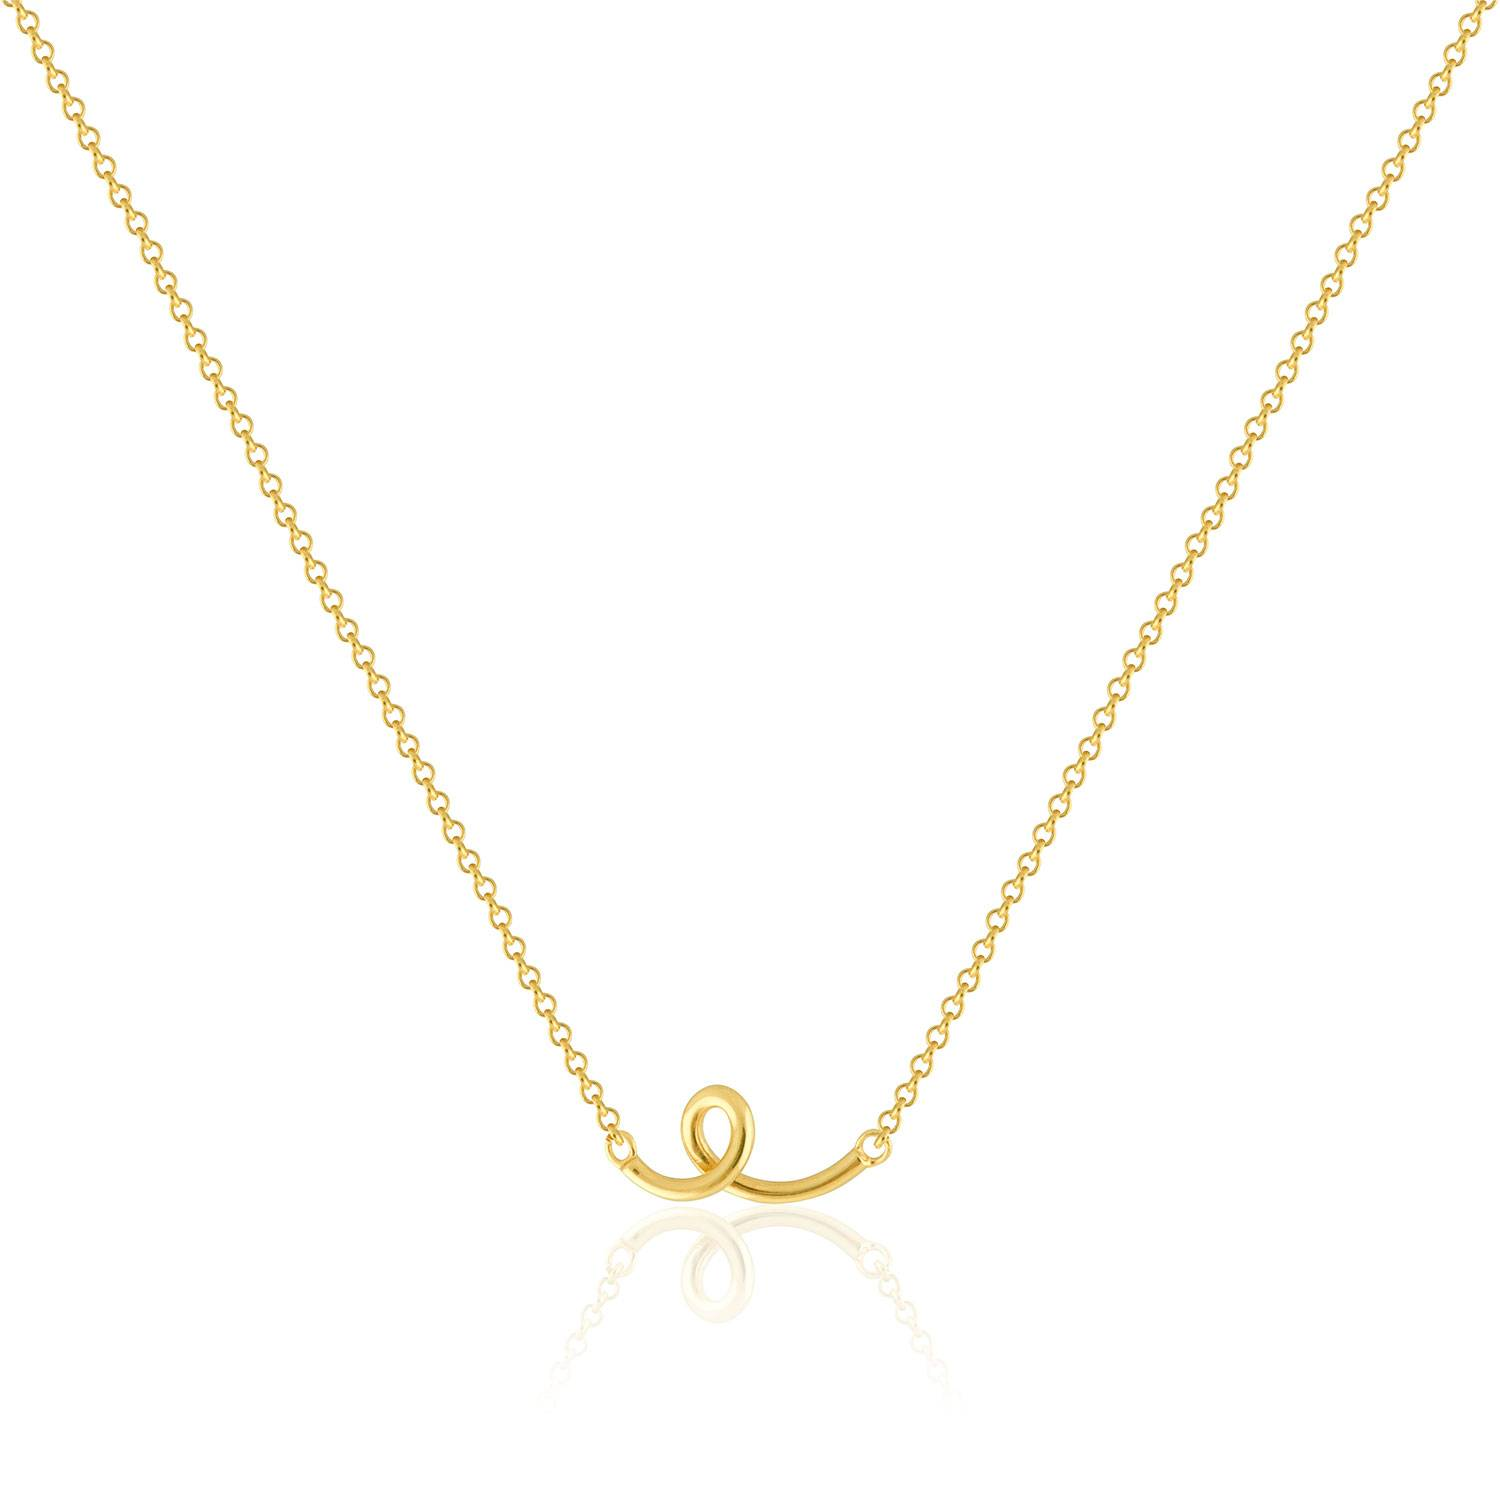 Sophie by Sophie Loopy Necklace, Gold